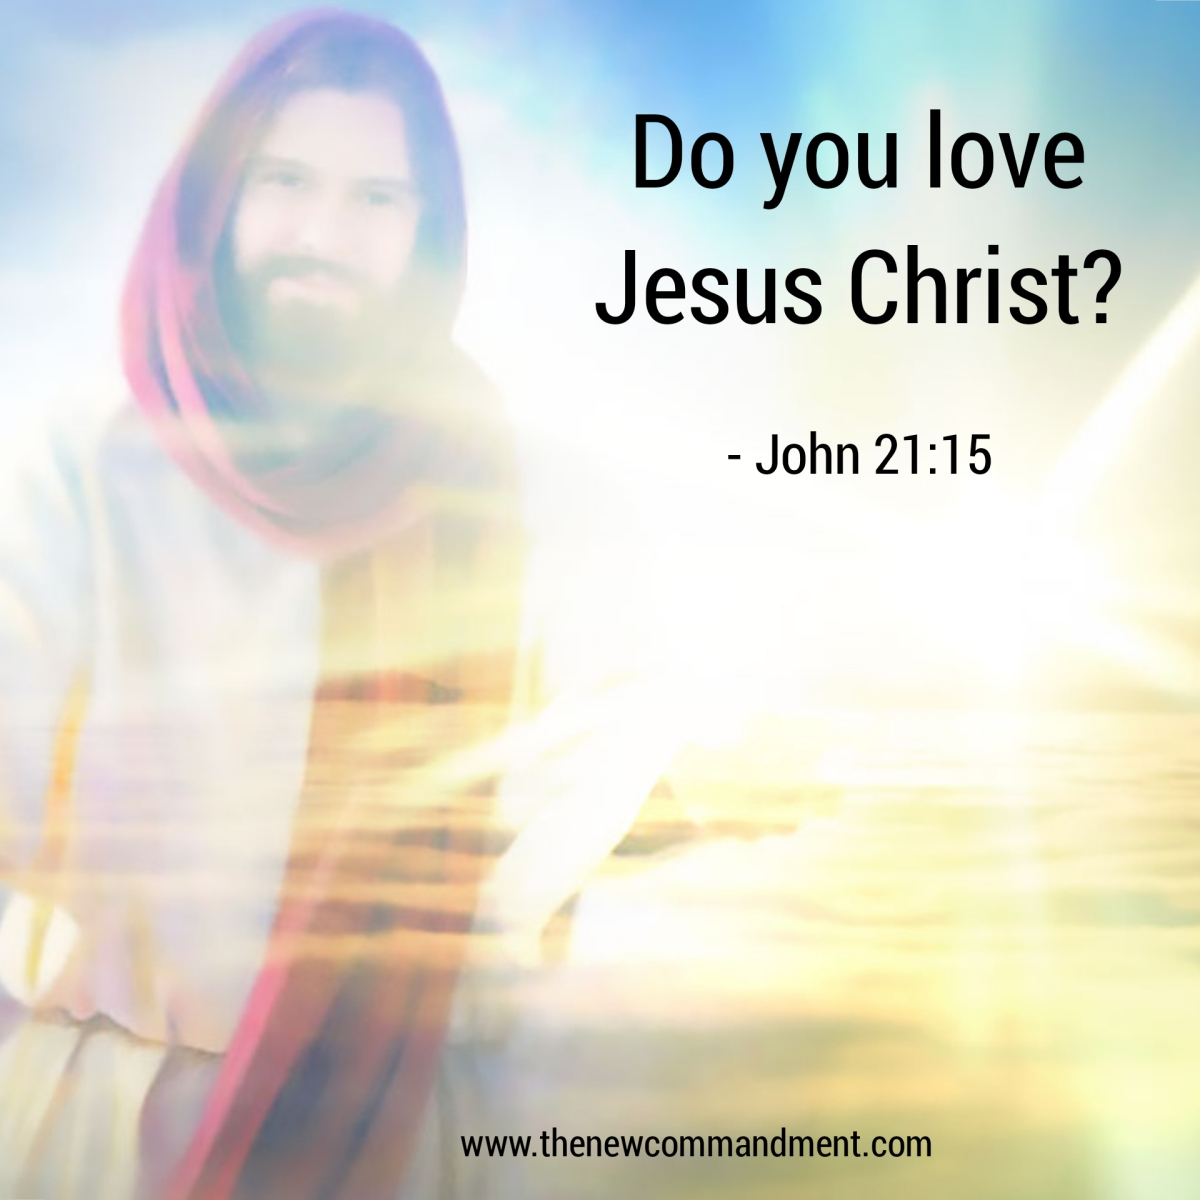 Do You Love Jesus Christ?